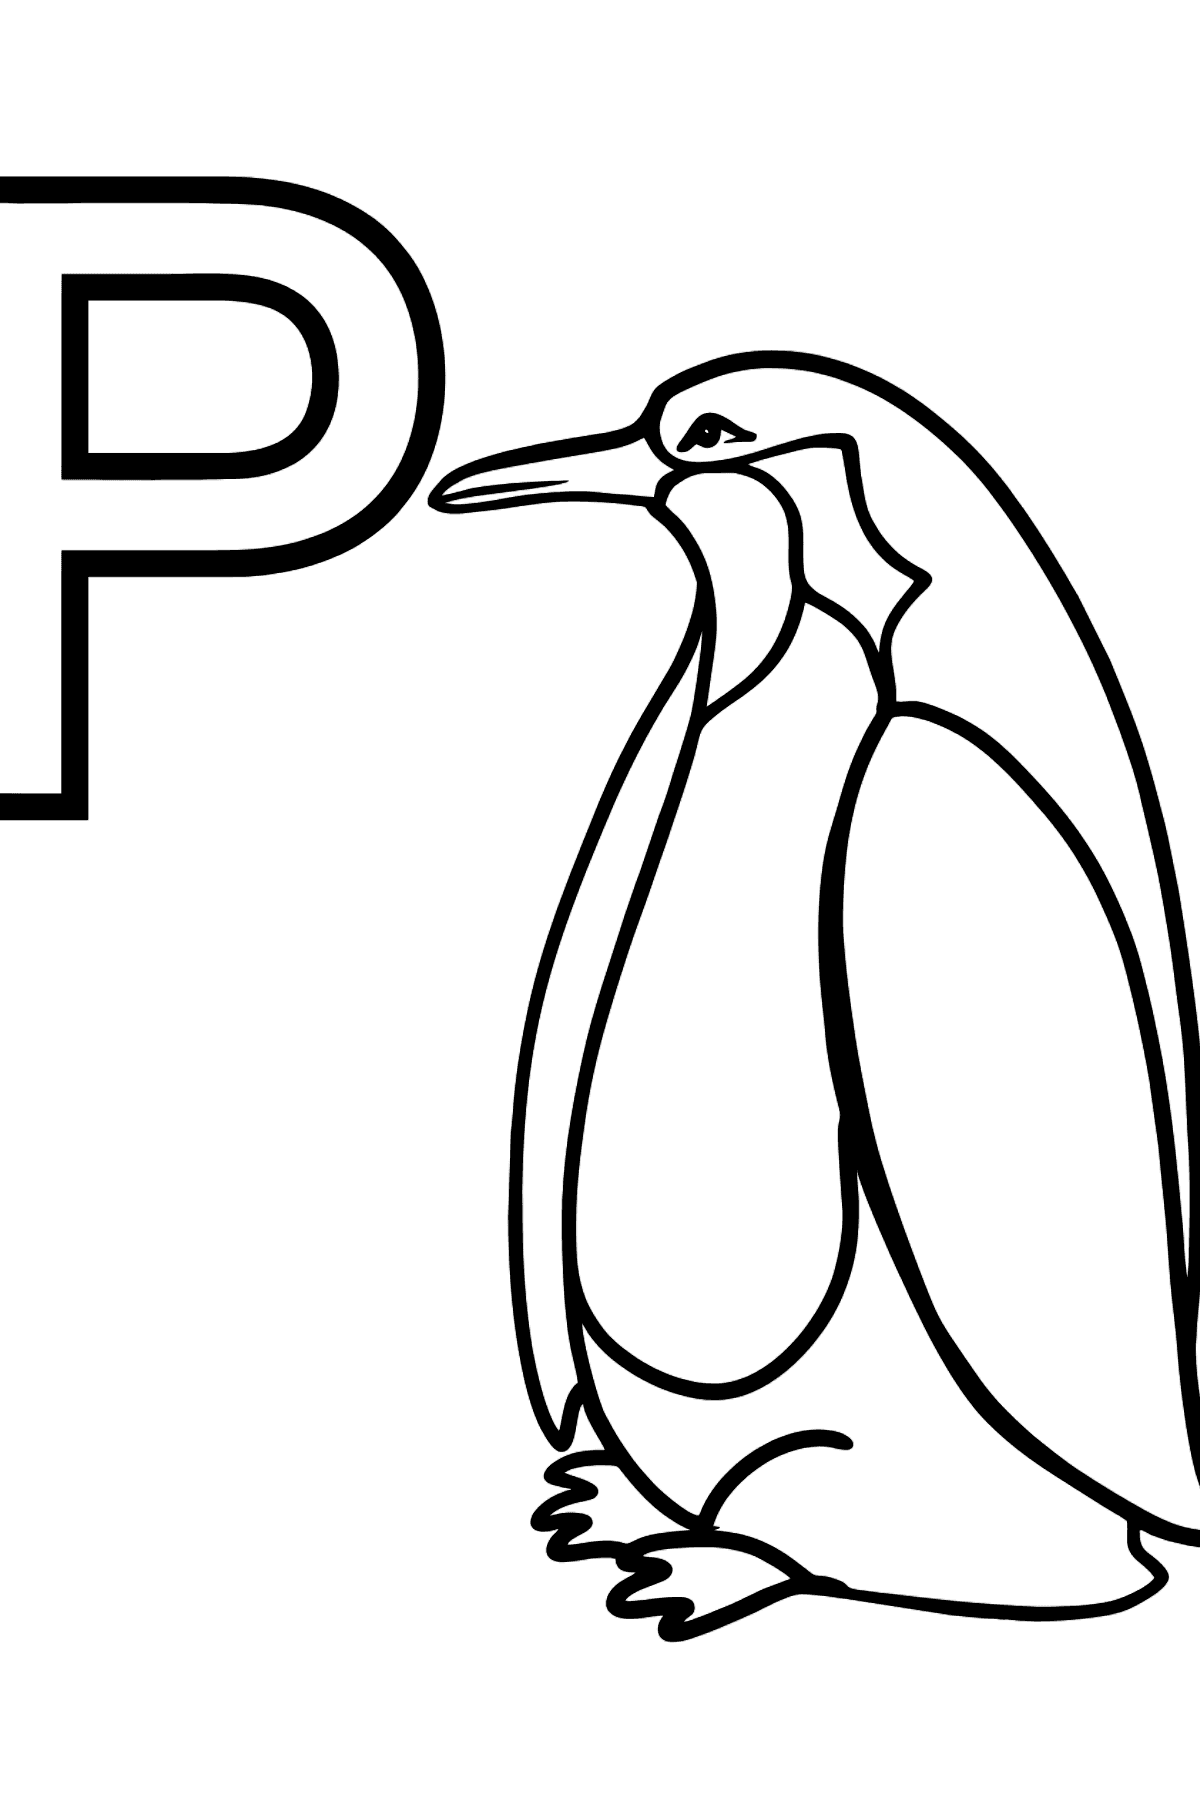 English Letter P coloring pages - PENGUIN - Coloring Pages for Kids